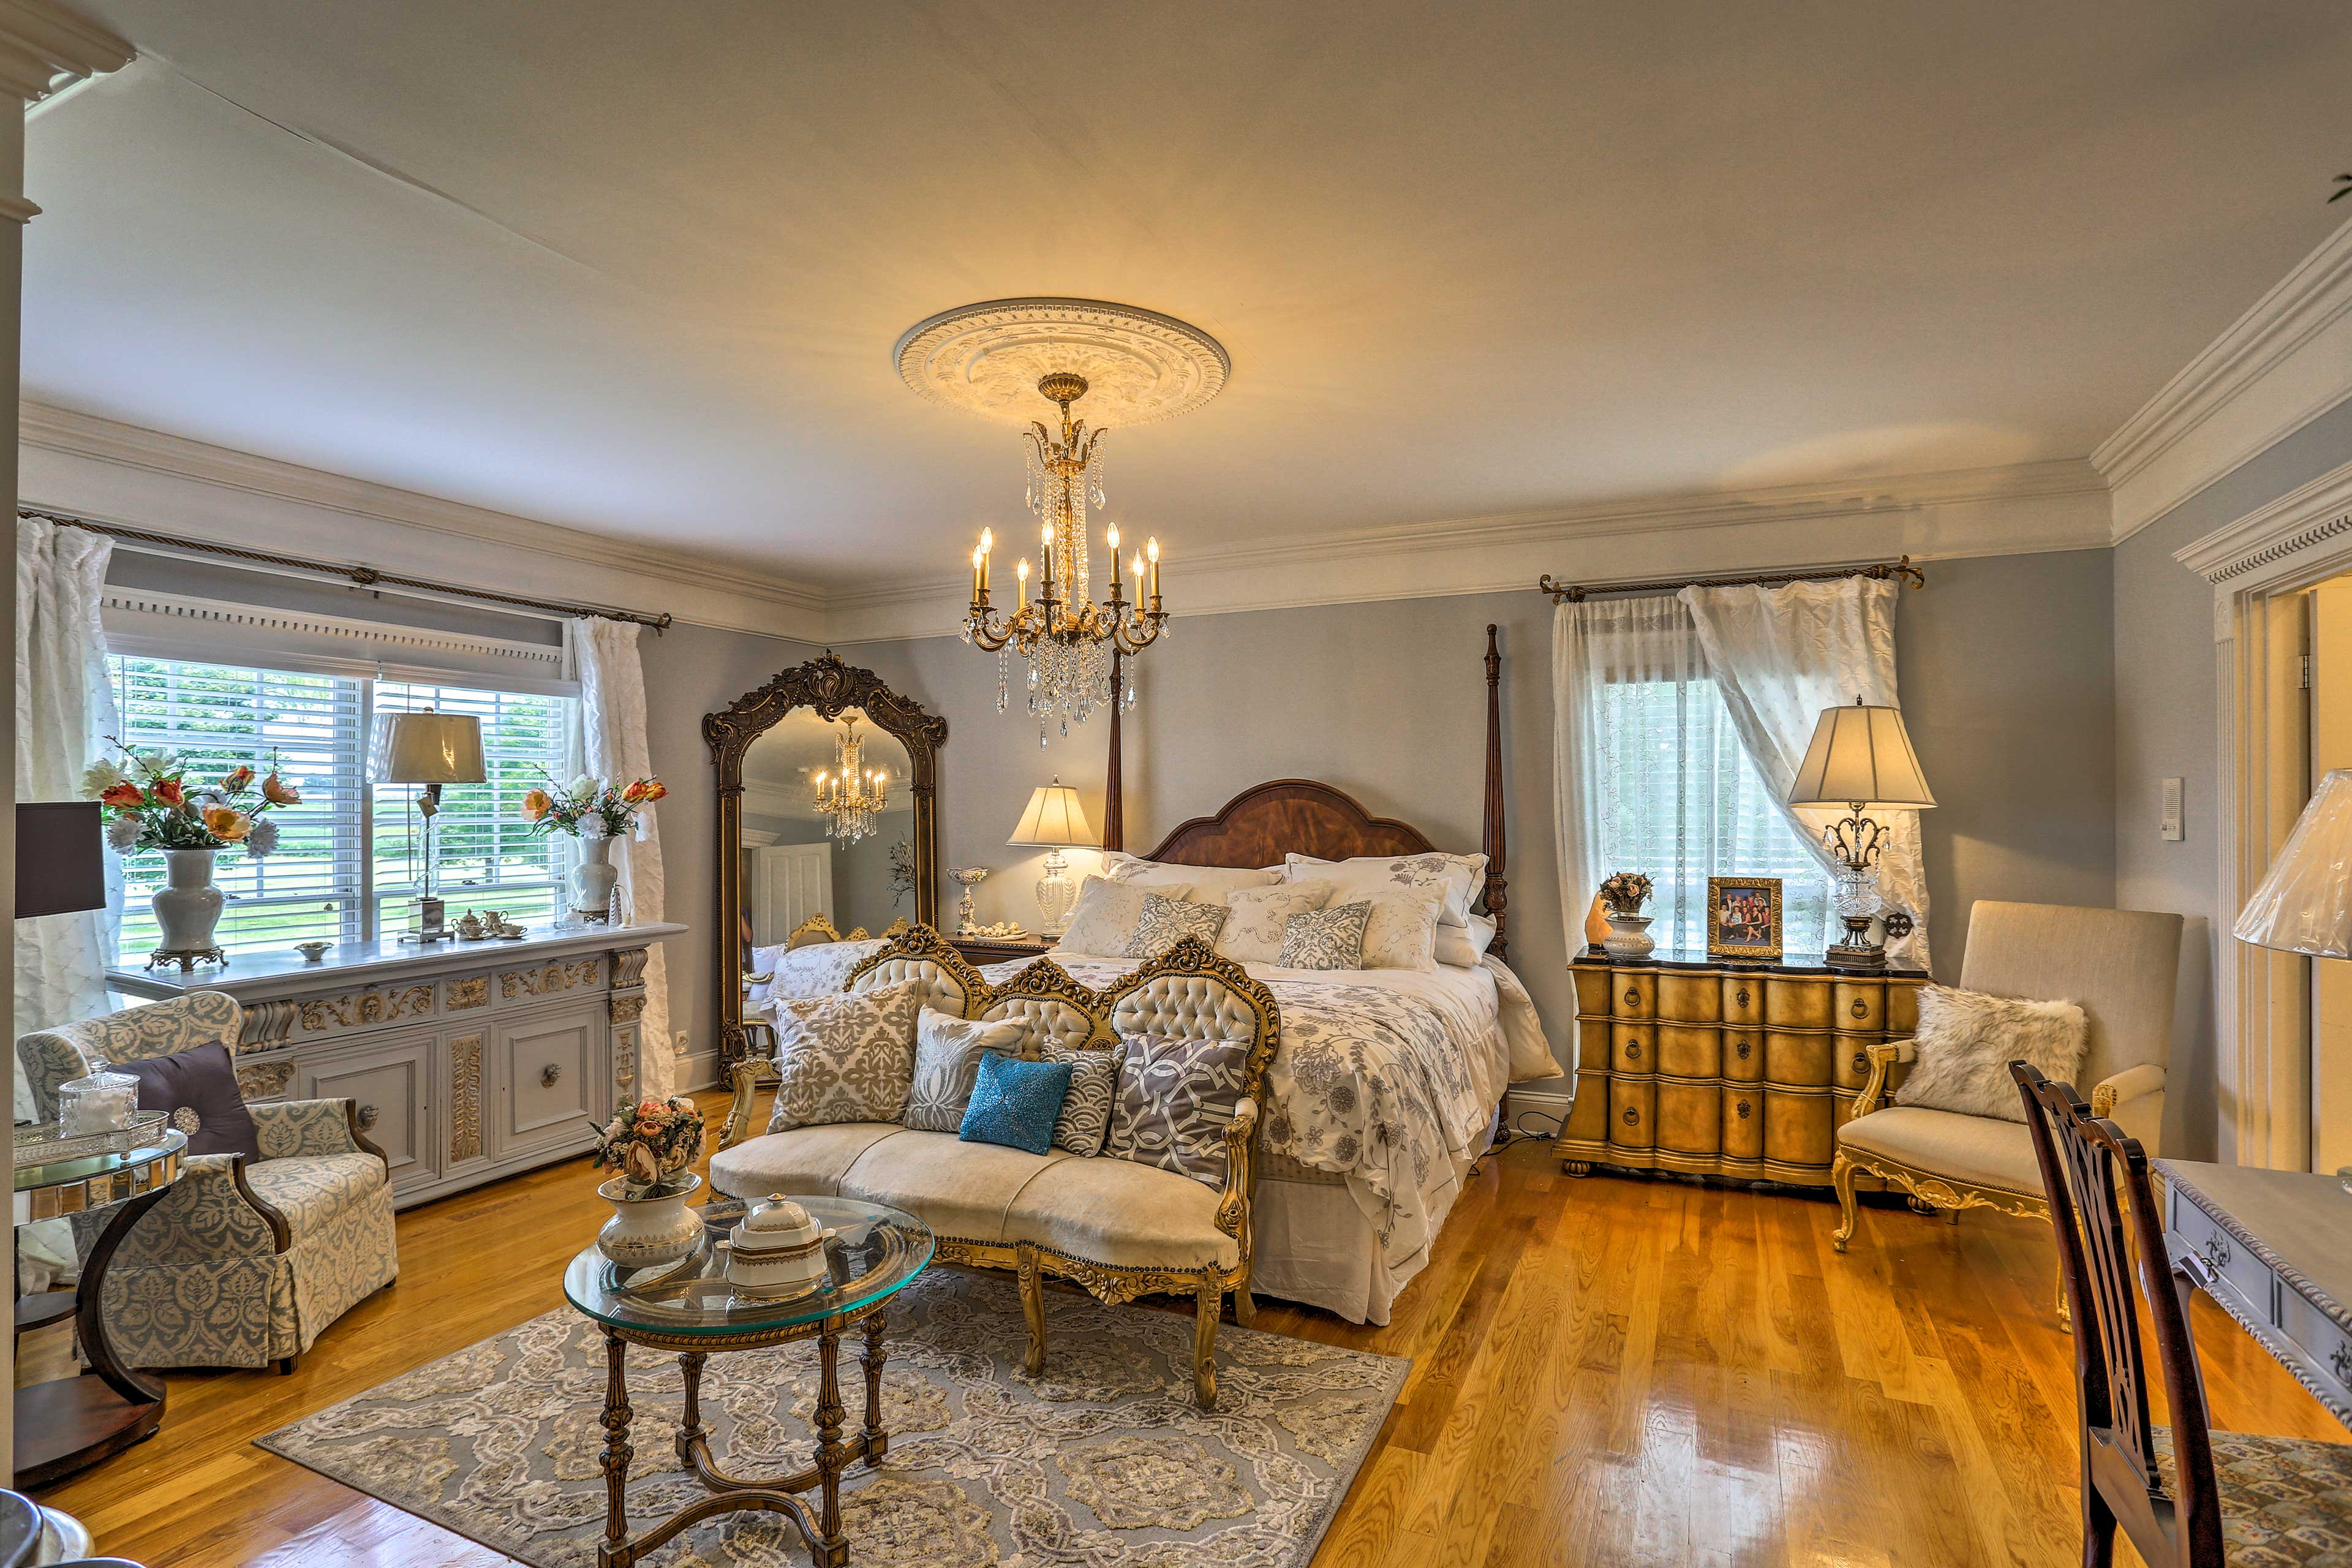 Two guests can claim the king bed in the 'Bridal Room.'